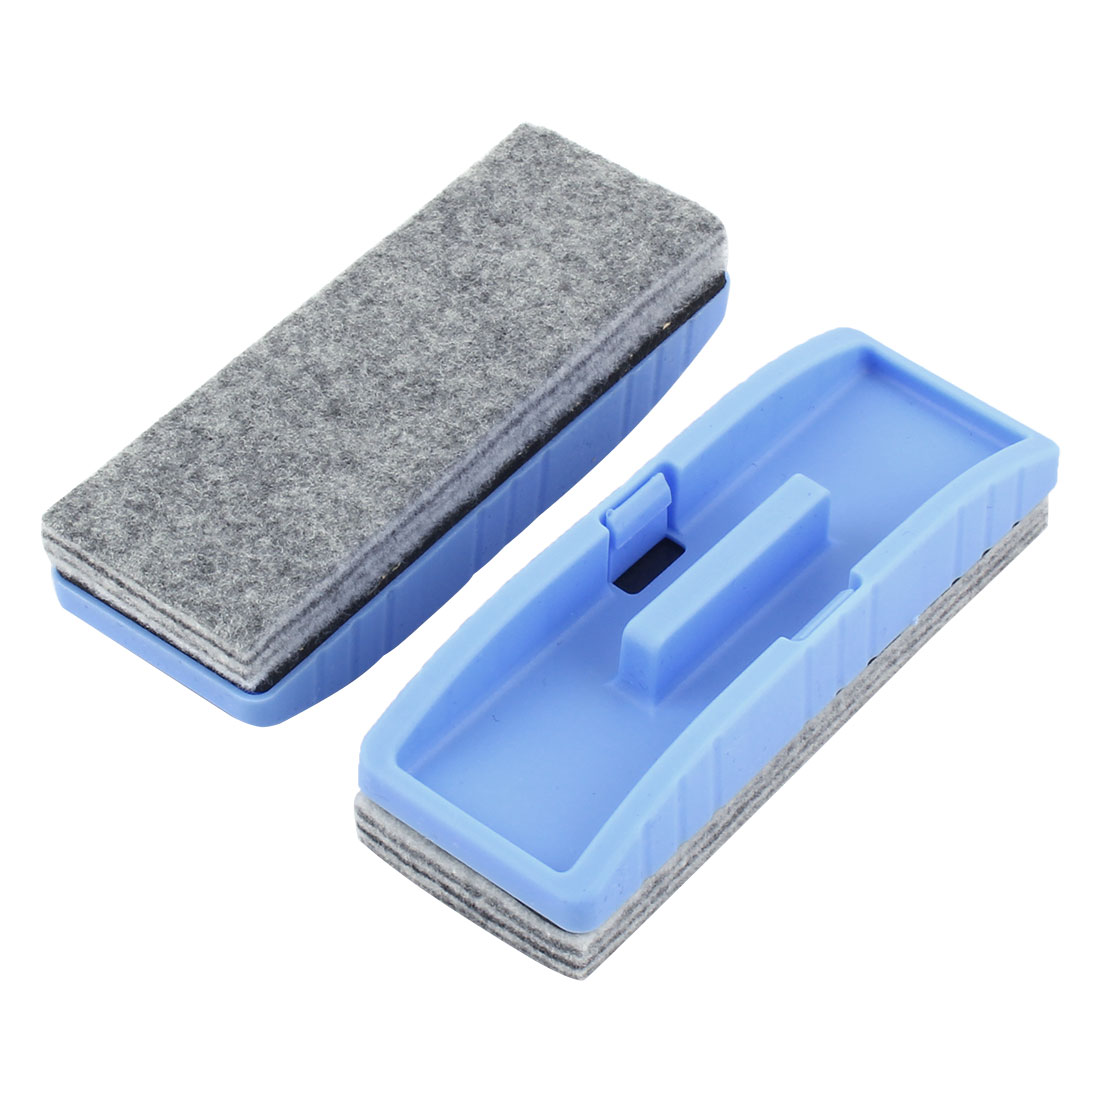 School Teaching Plastic Rectangle Blackboard Eraser Brush Stain Removal Blue 2pcs